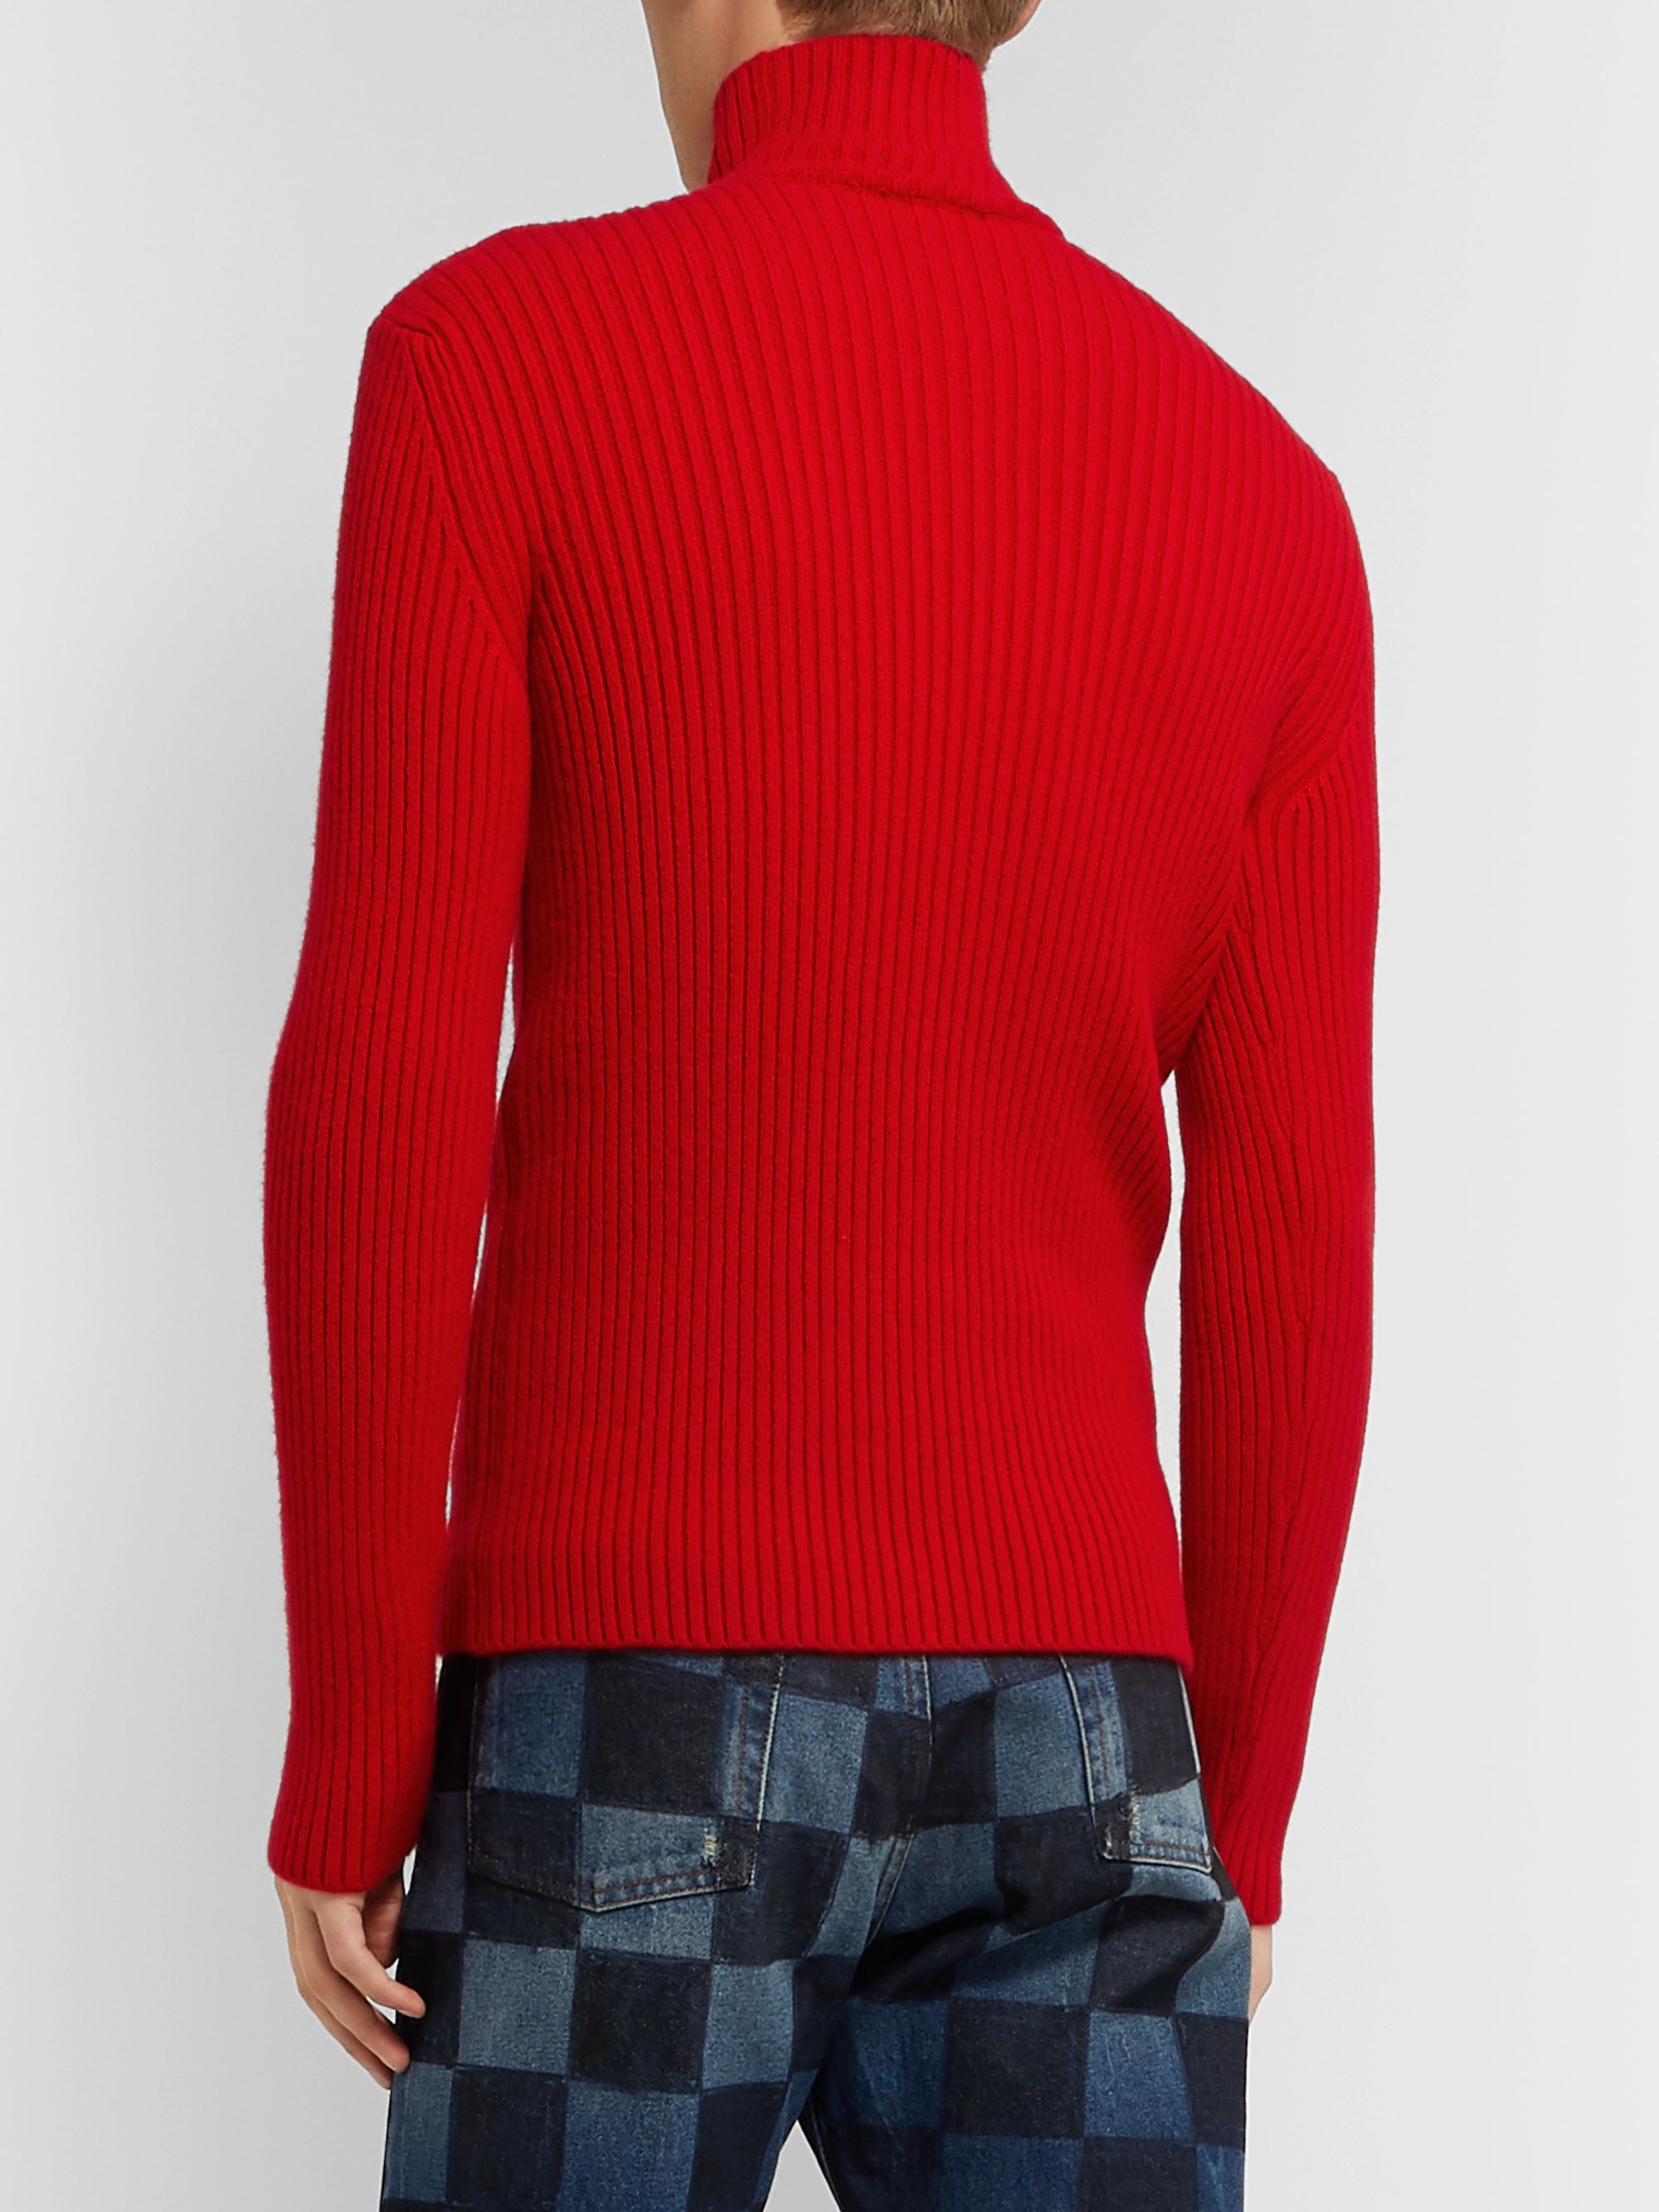 Balenciaga Slim-Fit Ribbed Cashmere-Blend Rollneck Sweater